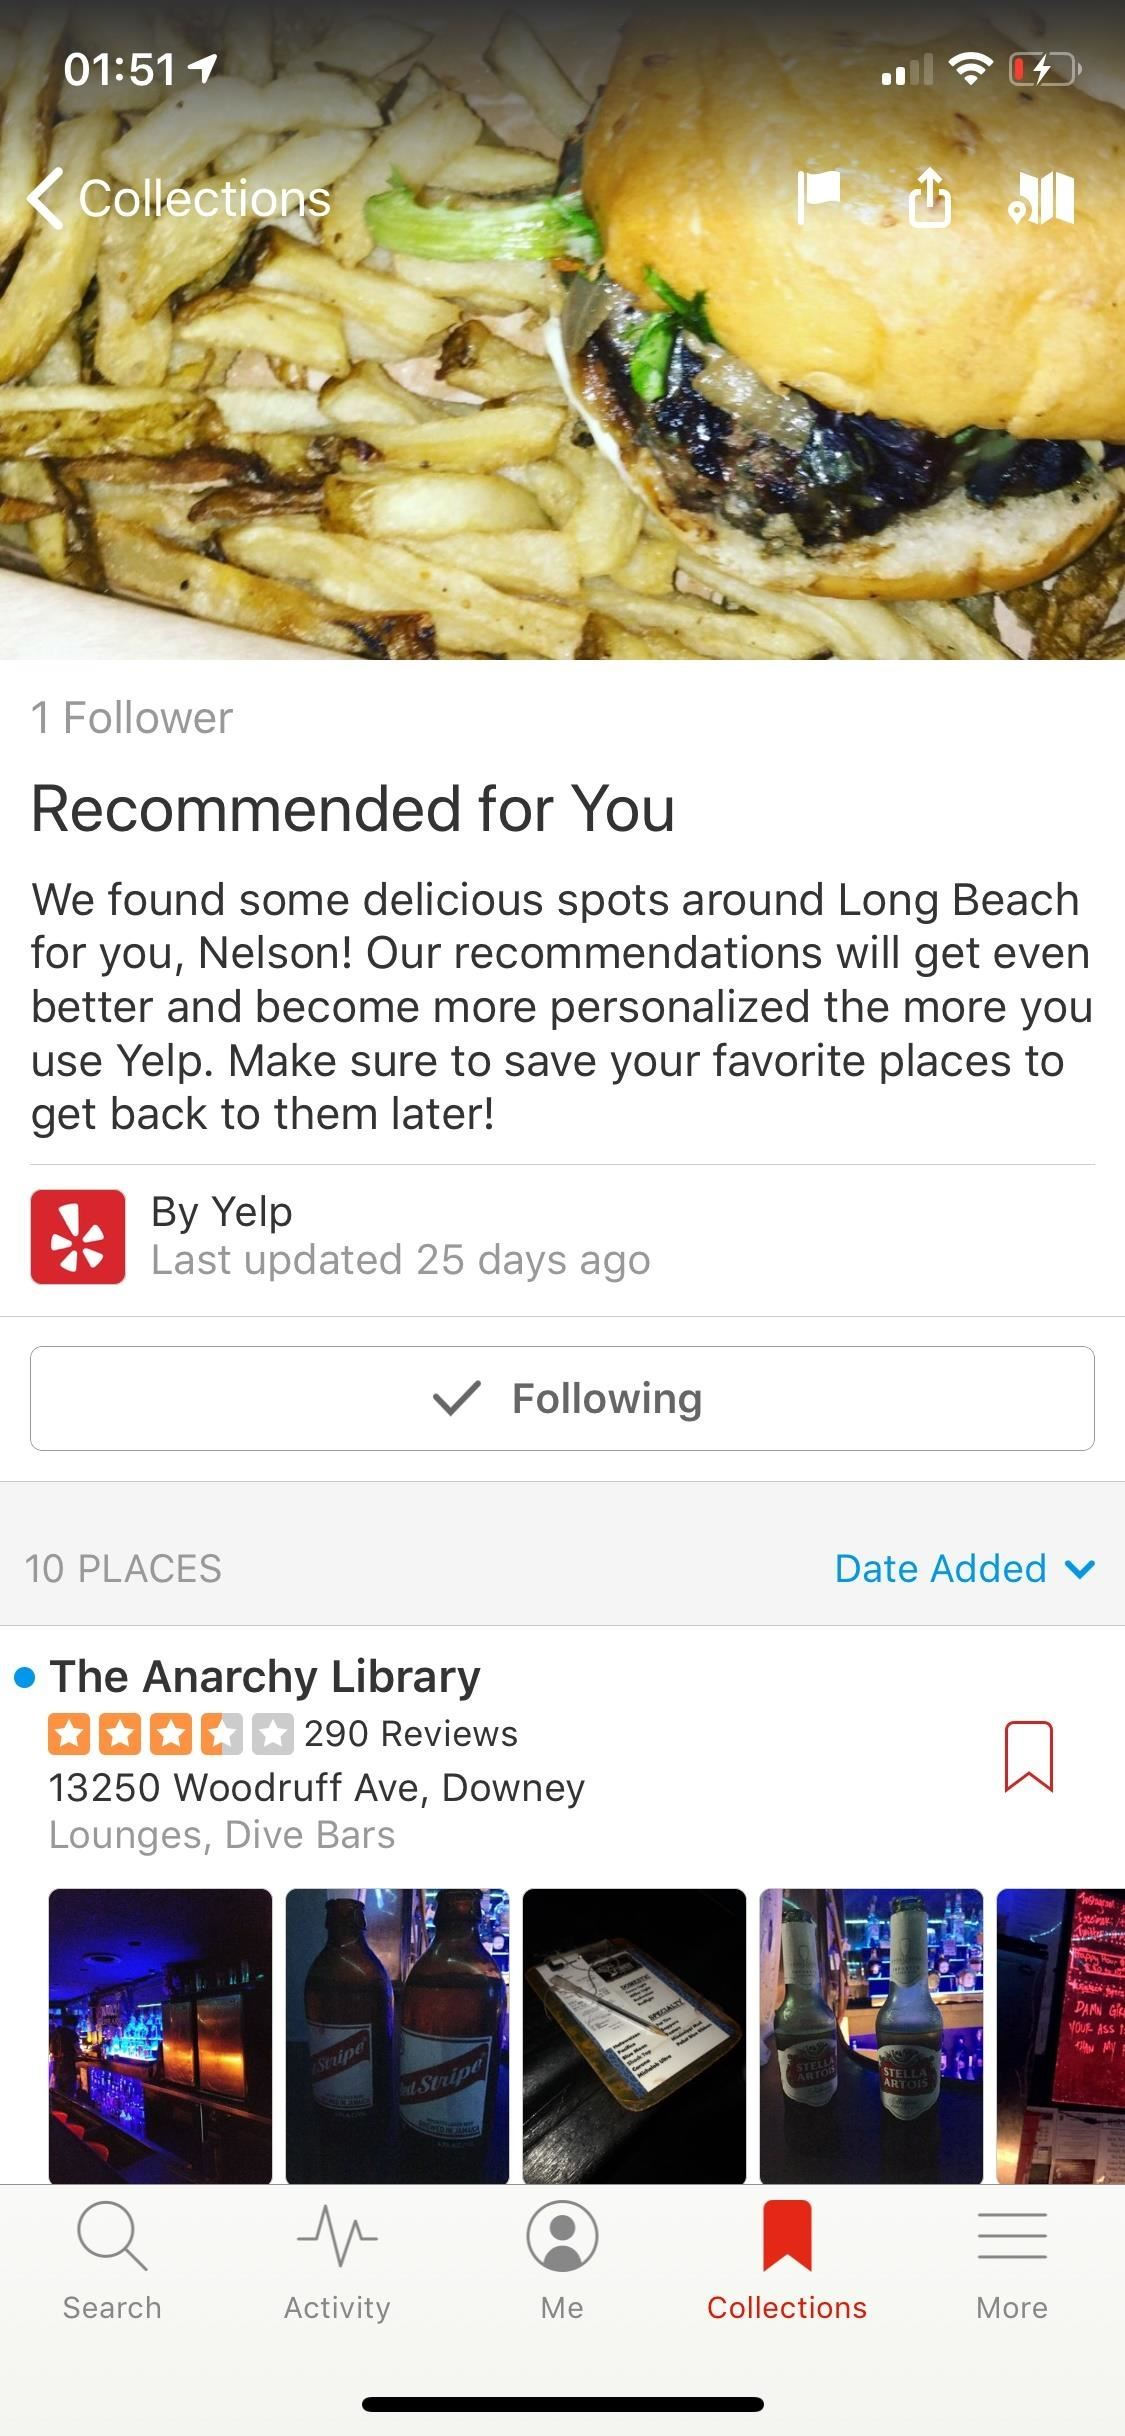 . Use Yelp collections to find new places and organize your bookmarked locations more.